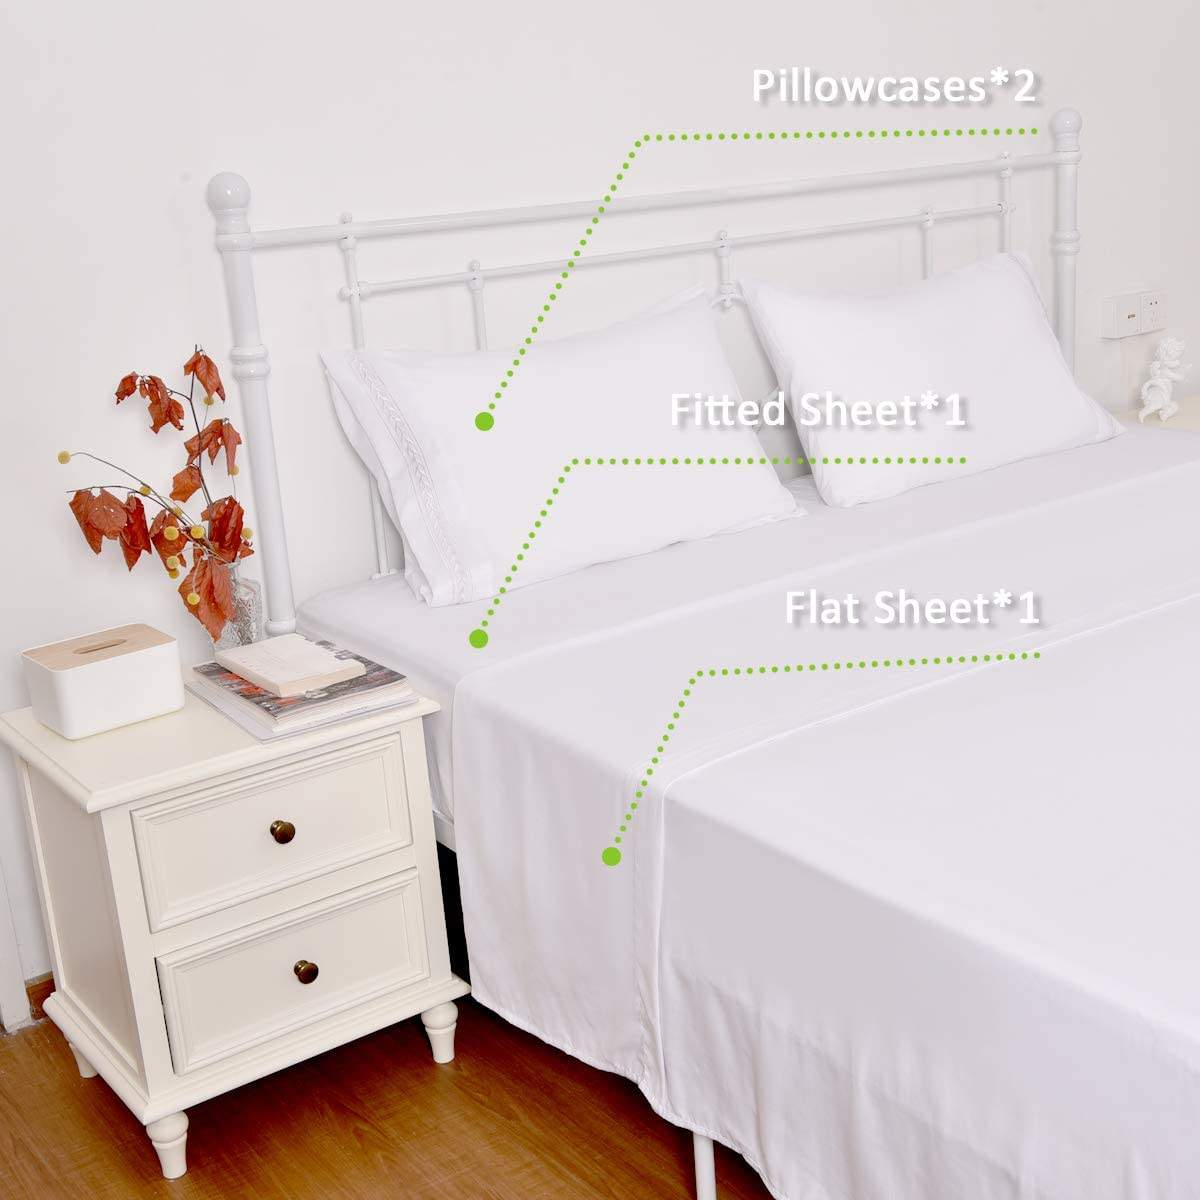 Soft like100% Egyptian Cotton Sheets 1000 Thread Count Brushed Microfiber White Bed Sheet with Pillowcases